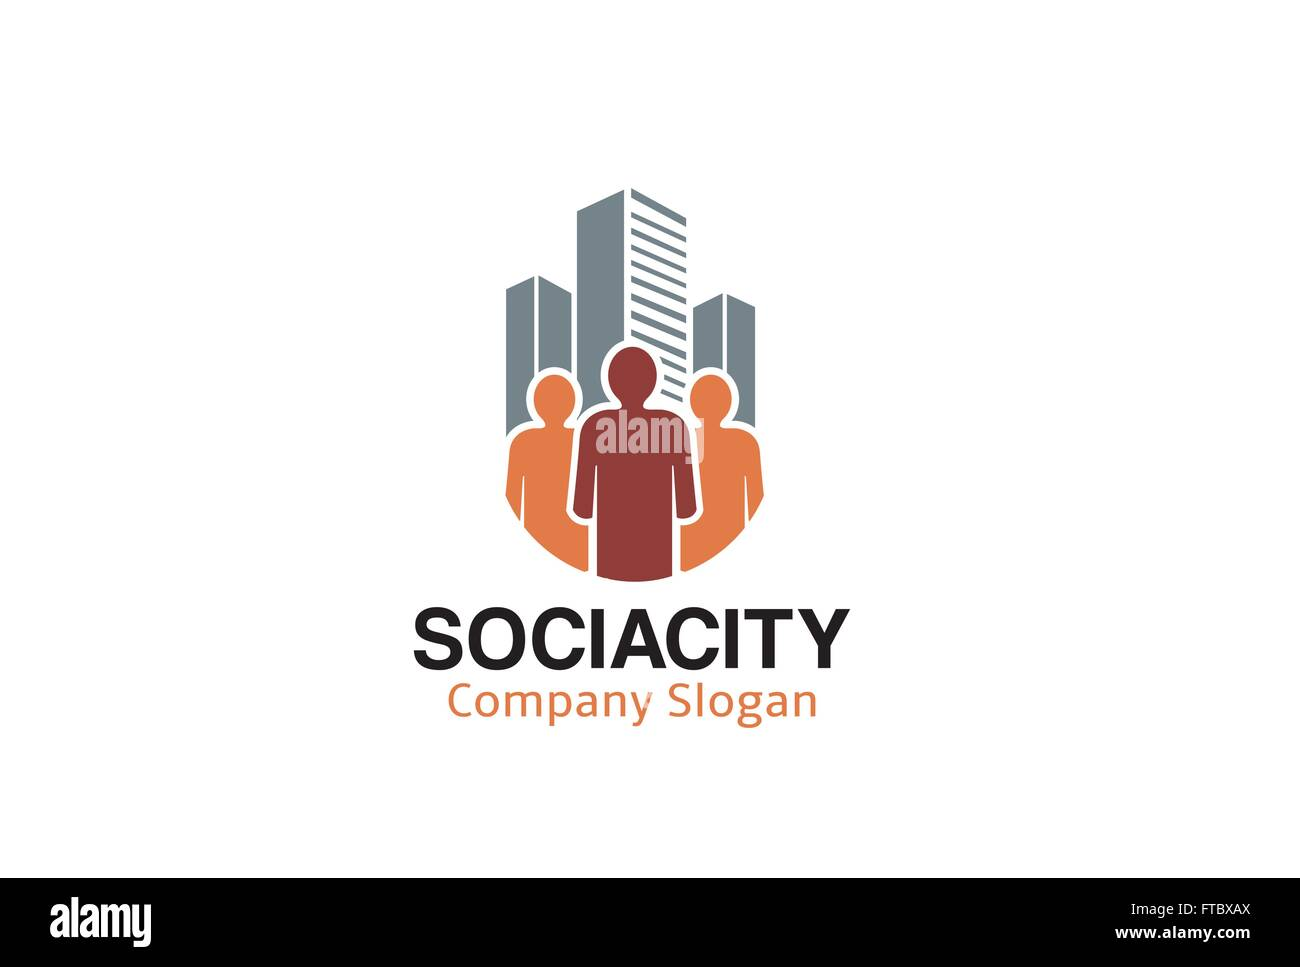 Social City Design Illustration - Stock Vector